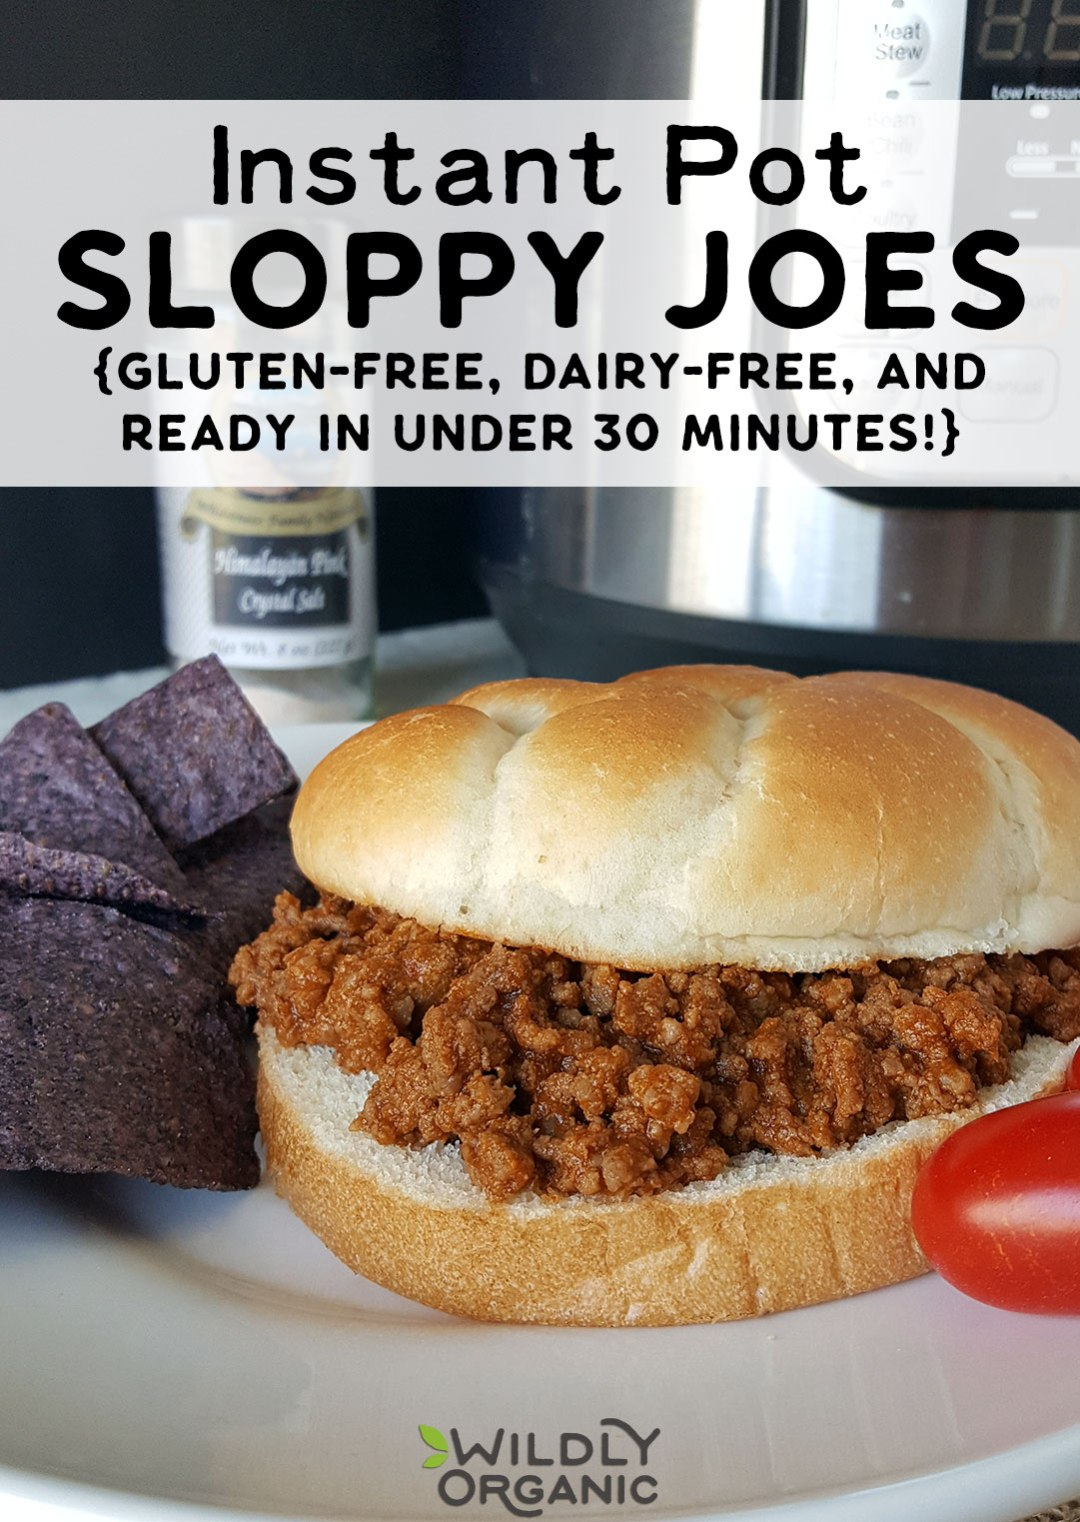 Instant Pot Sloppy Joes are perfect for busy nights or big crowds! Pressure cooking the sloppy joe filling infuses the flavors throughout the meat making for a more flavorful joe. Plus, using Wildly Organic ingredients means a healthy AND delicious meal everyone will love. Allergy friendly, gluten-free, dairy-free. #realfood #instantpot #instantpotrecipes #iprecipes #beef #pressurecooker #healthyfood #healthyrecipes #glutenfree #dairyfree #allergyfriendly